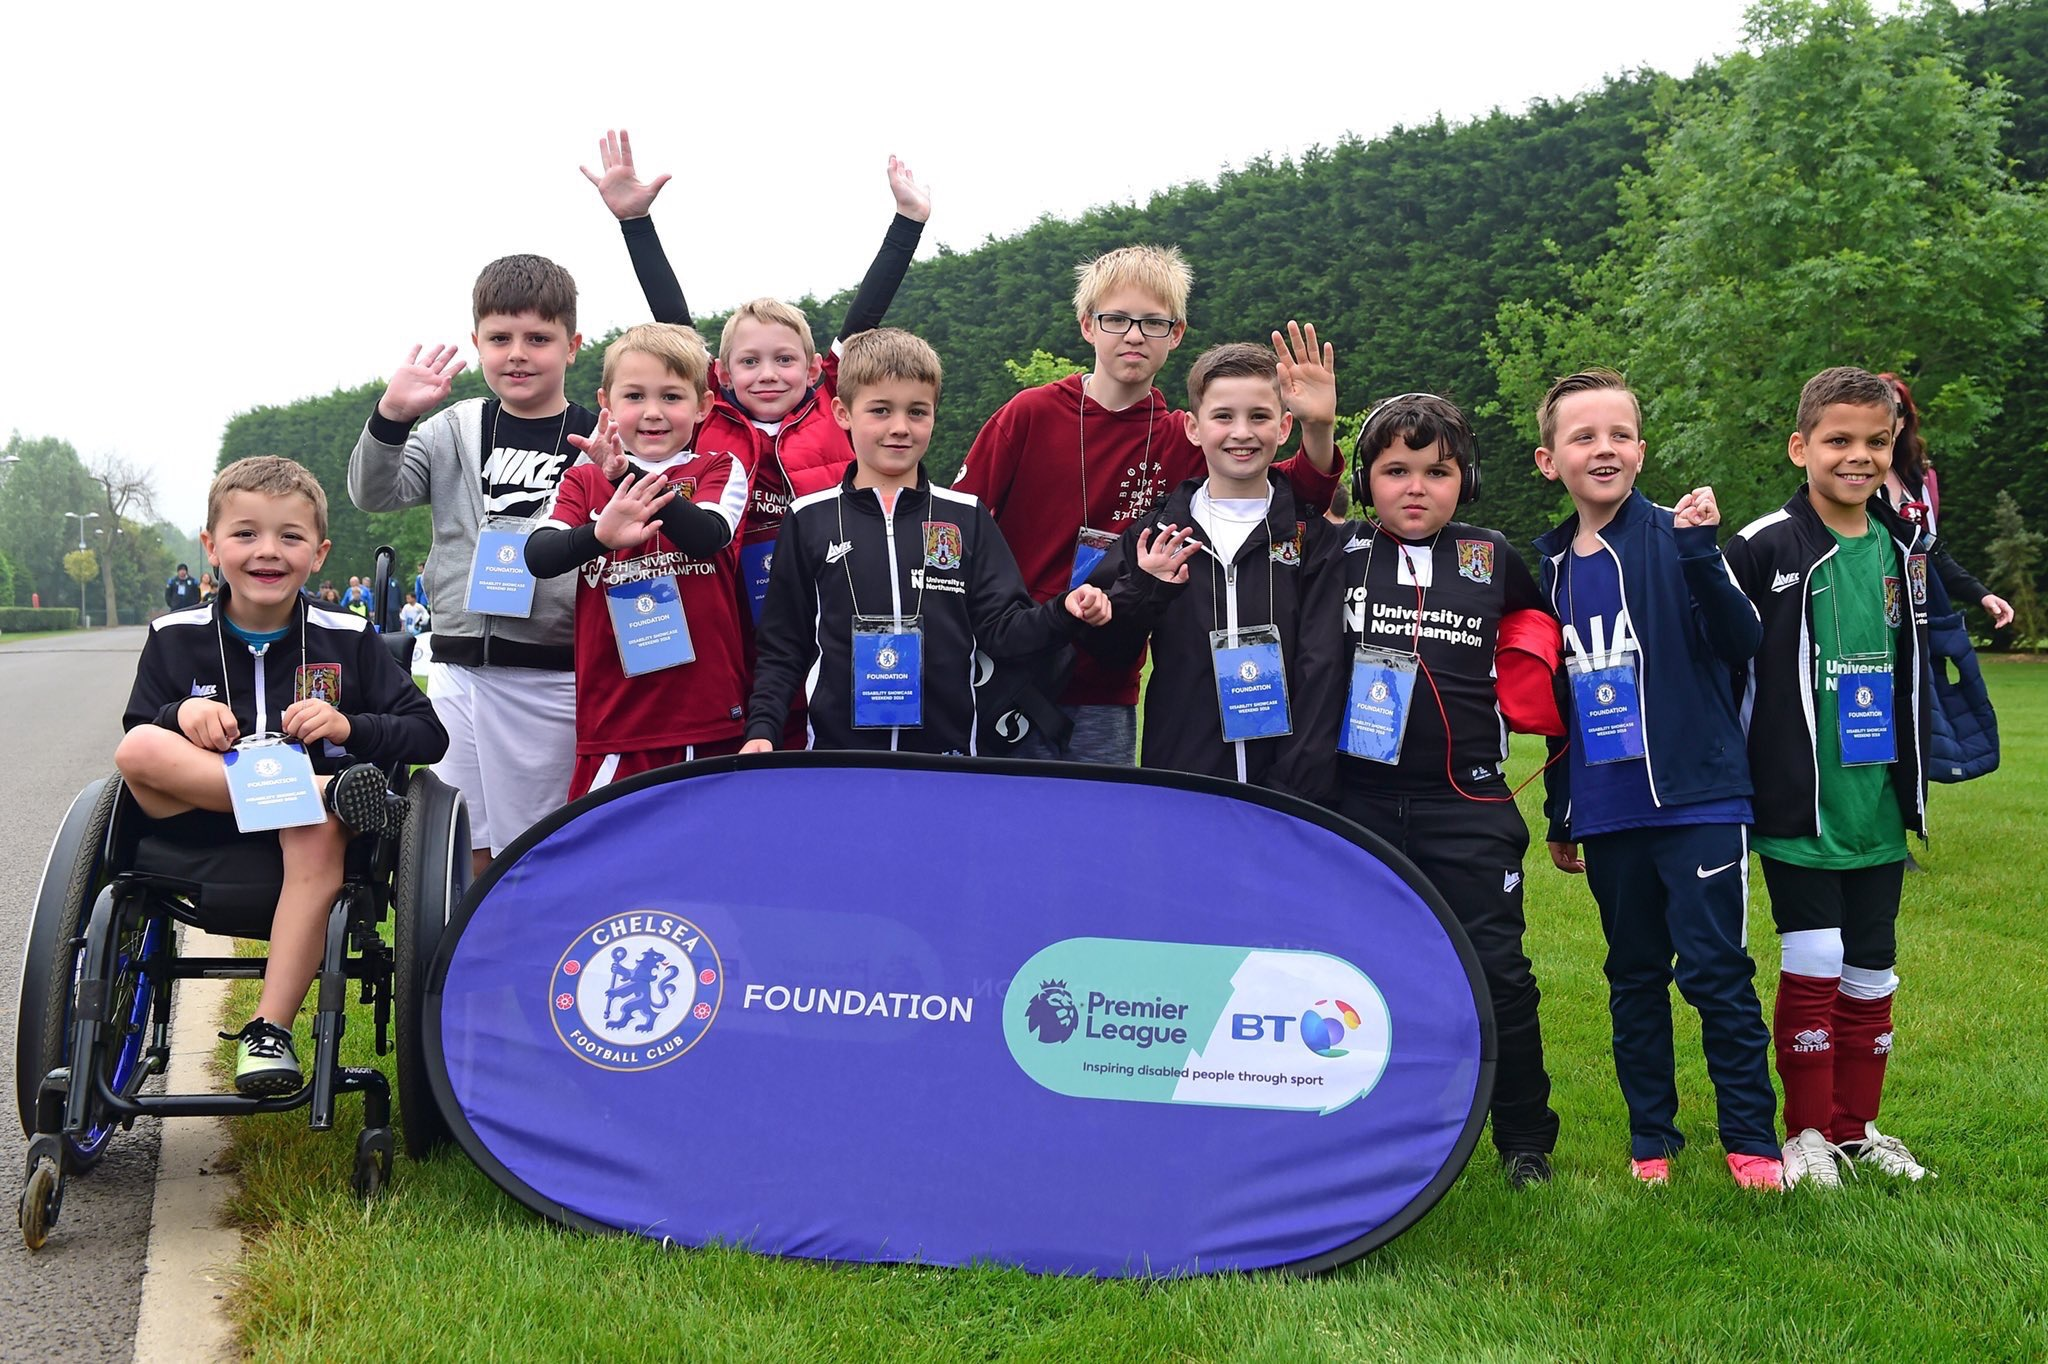 Our under 11's disability team taking part at a tournament at Chelsea's training ground in 2018